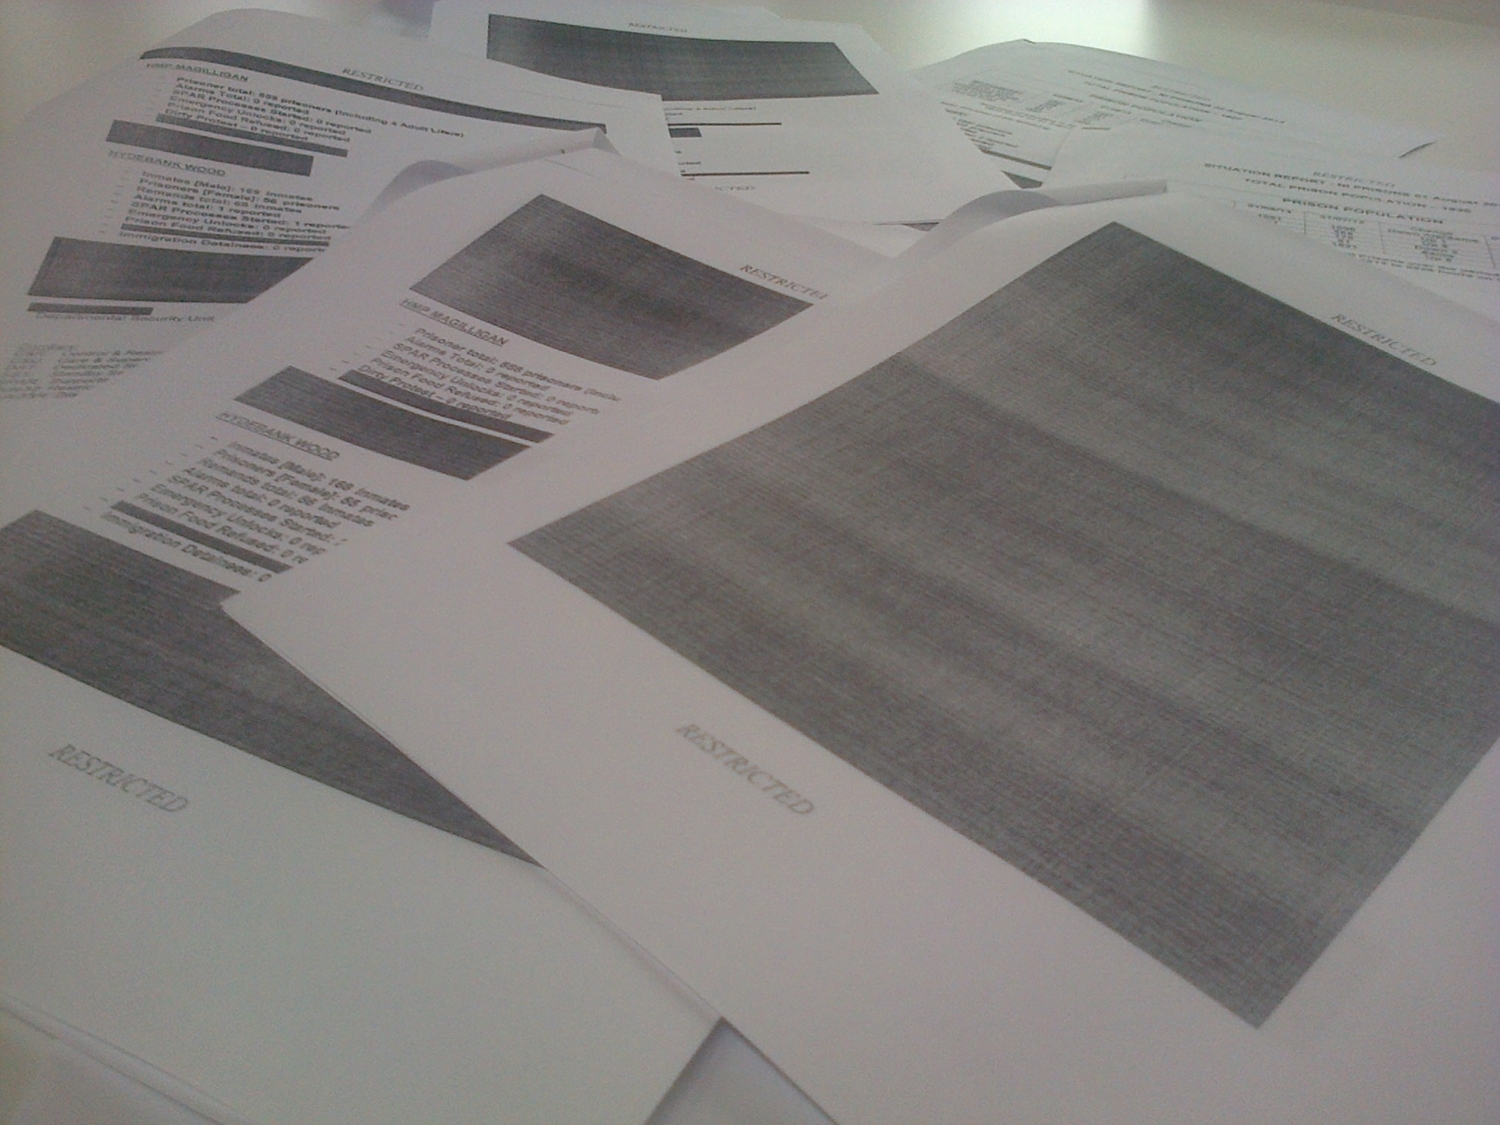 The Situation Reports were released under FoI but were heavily redacted